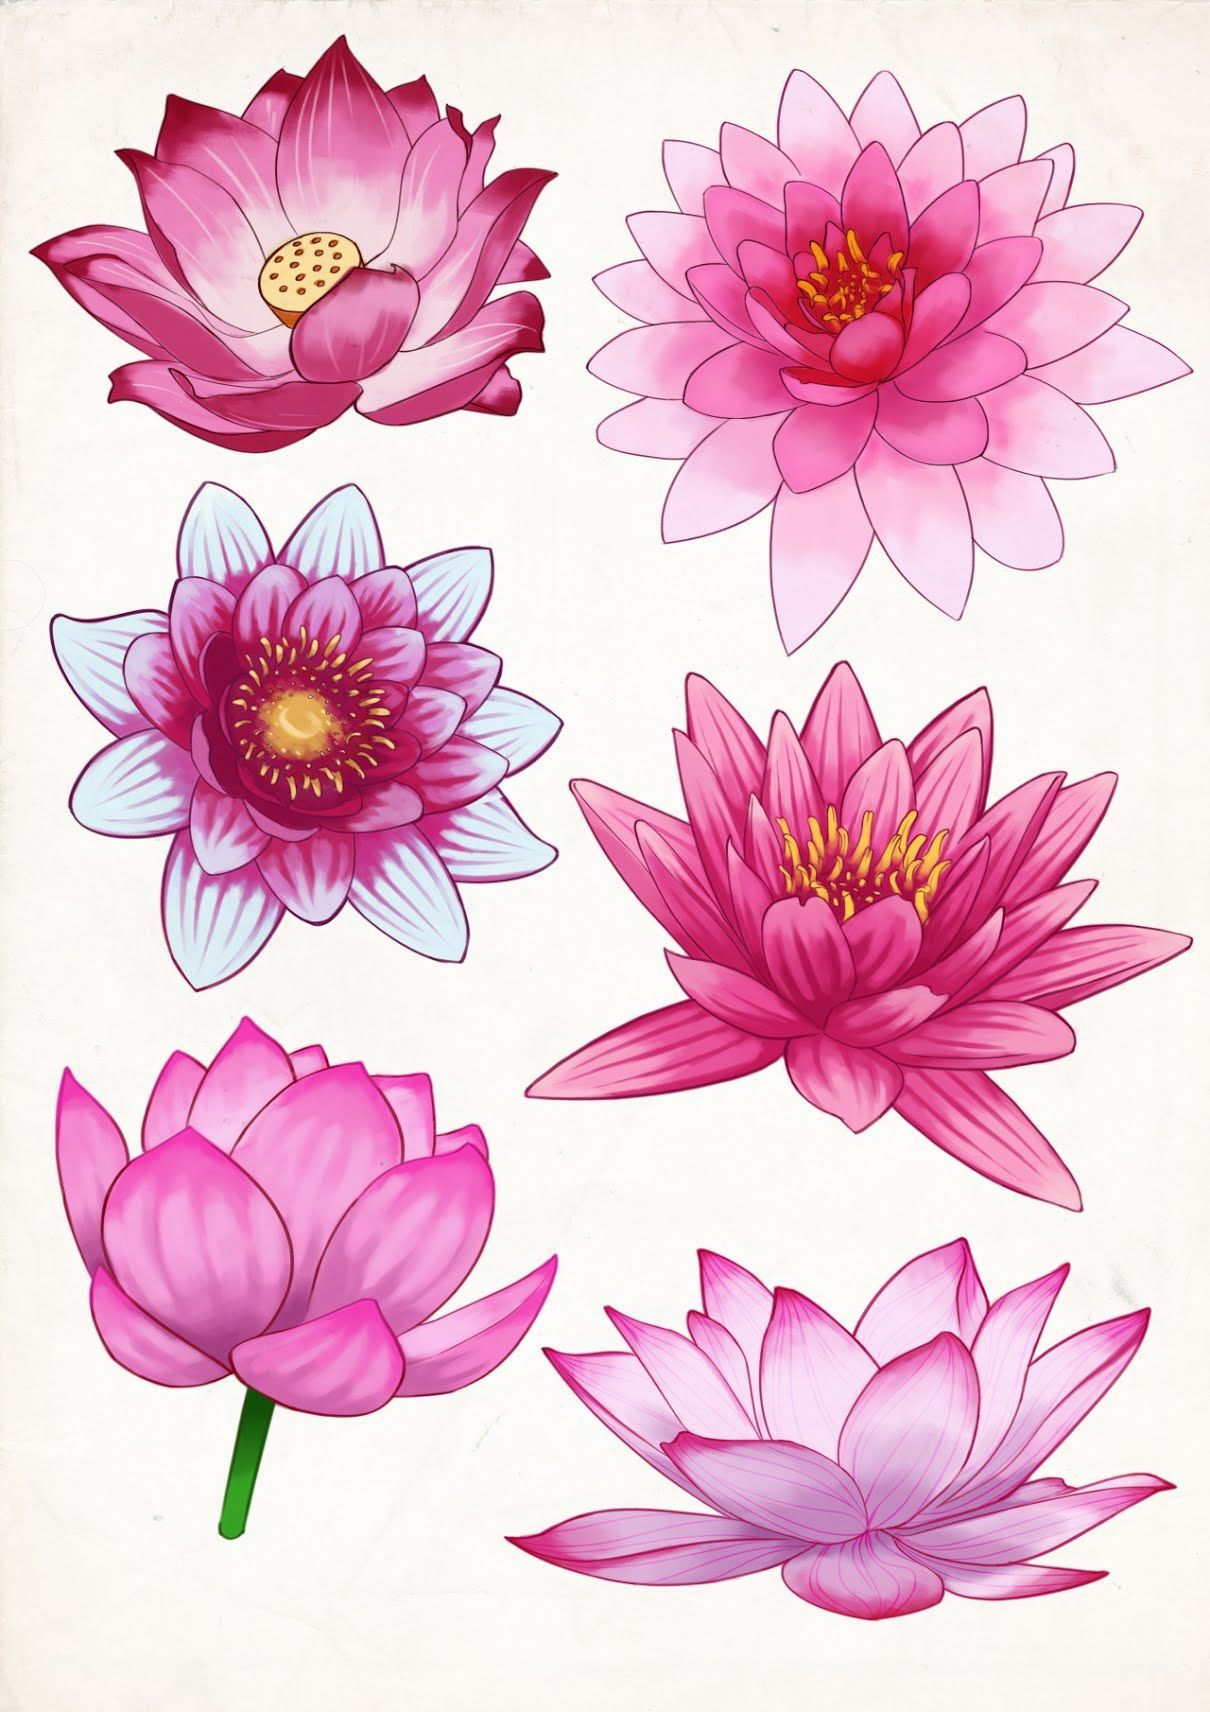 FelineTrickster Artwork — Some pink Lotus flower studies #FlowerTattooDesigns #lotusflower